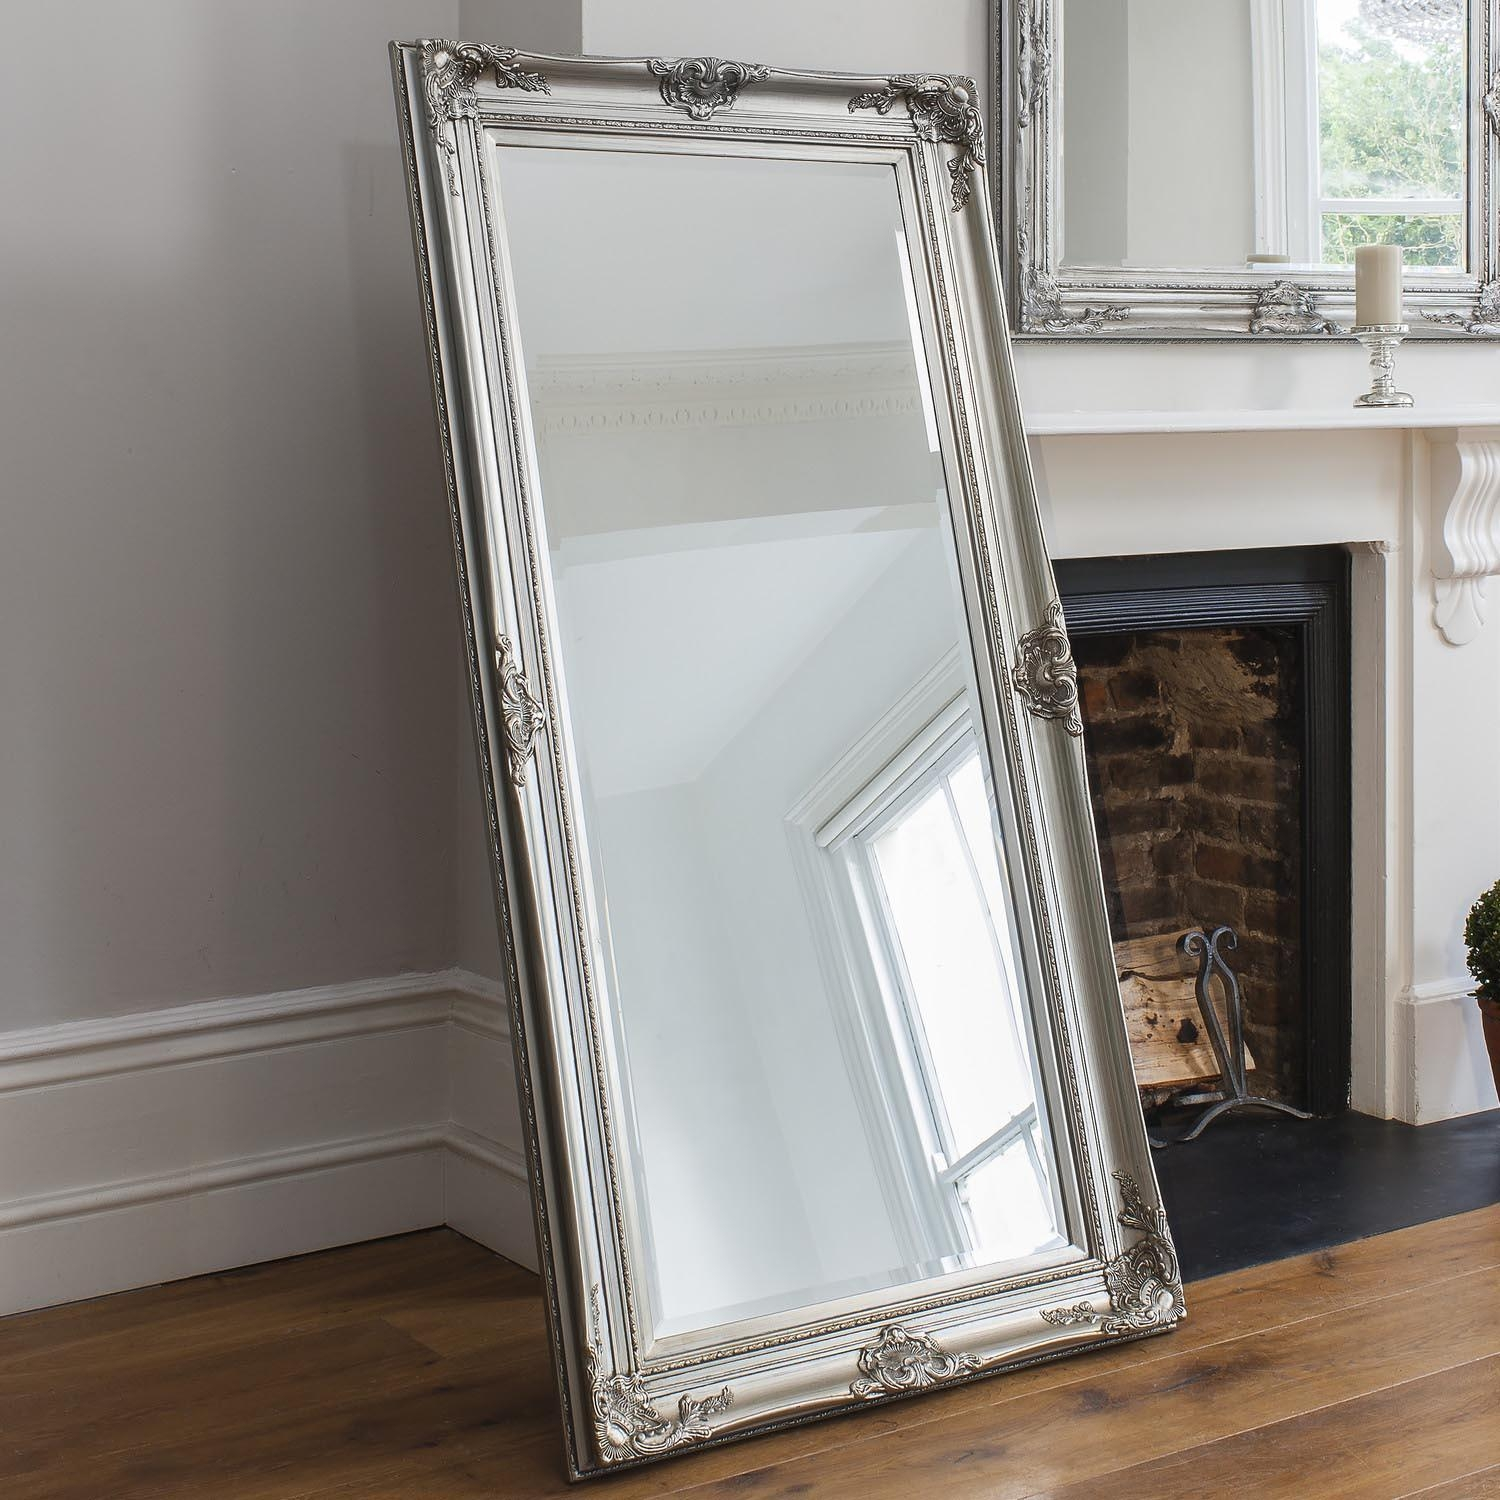 Extra Large Floor Standing Mirrors | Floor Decoration Pertaining To Extra Large Floor Standing Mirrors (Image 13 of 20)